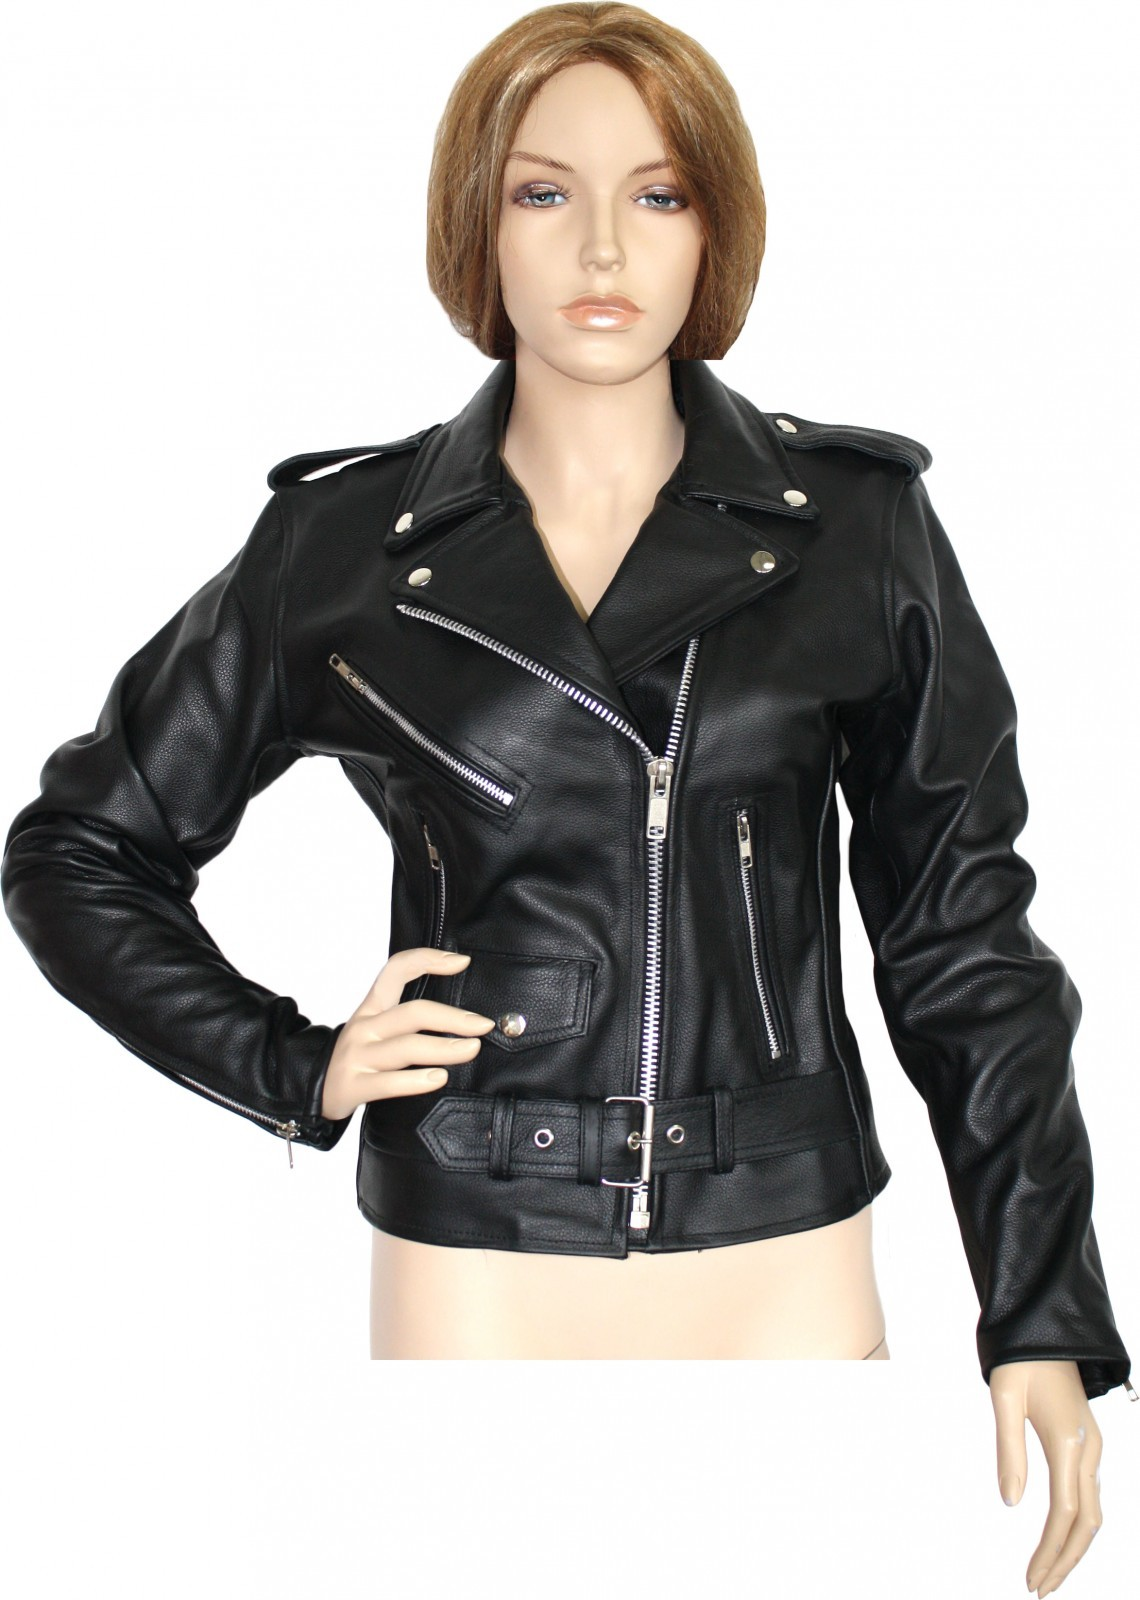 damen lederjacke motorradjacke rockabilly rockerjacke. Black Bedroom Furniture Sets. Home Design Ideas